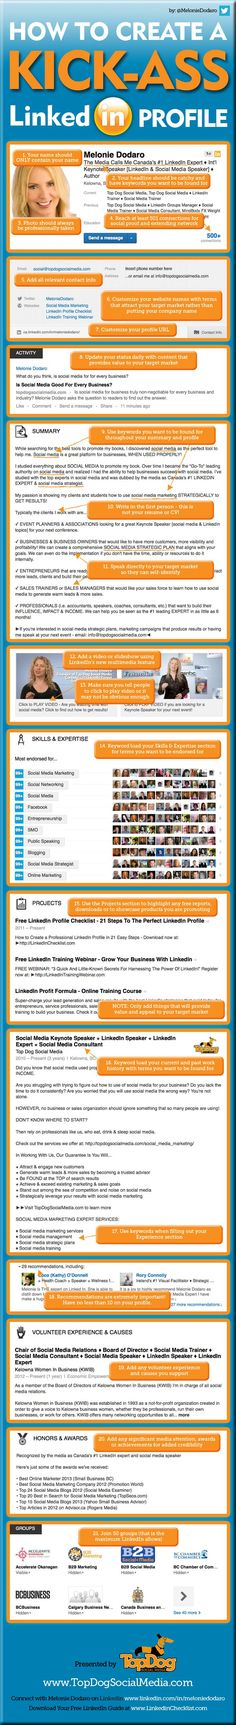 How to create a great LinkedIn Profile that gets you noticed.